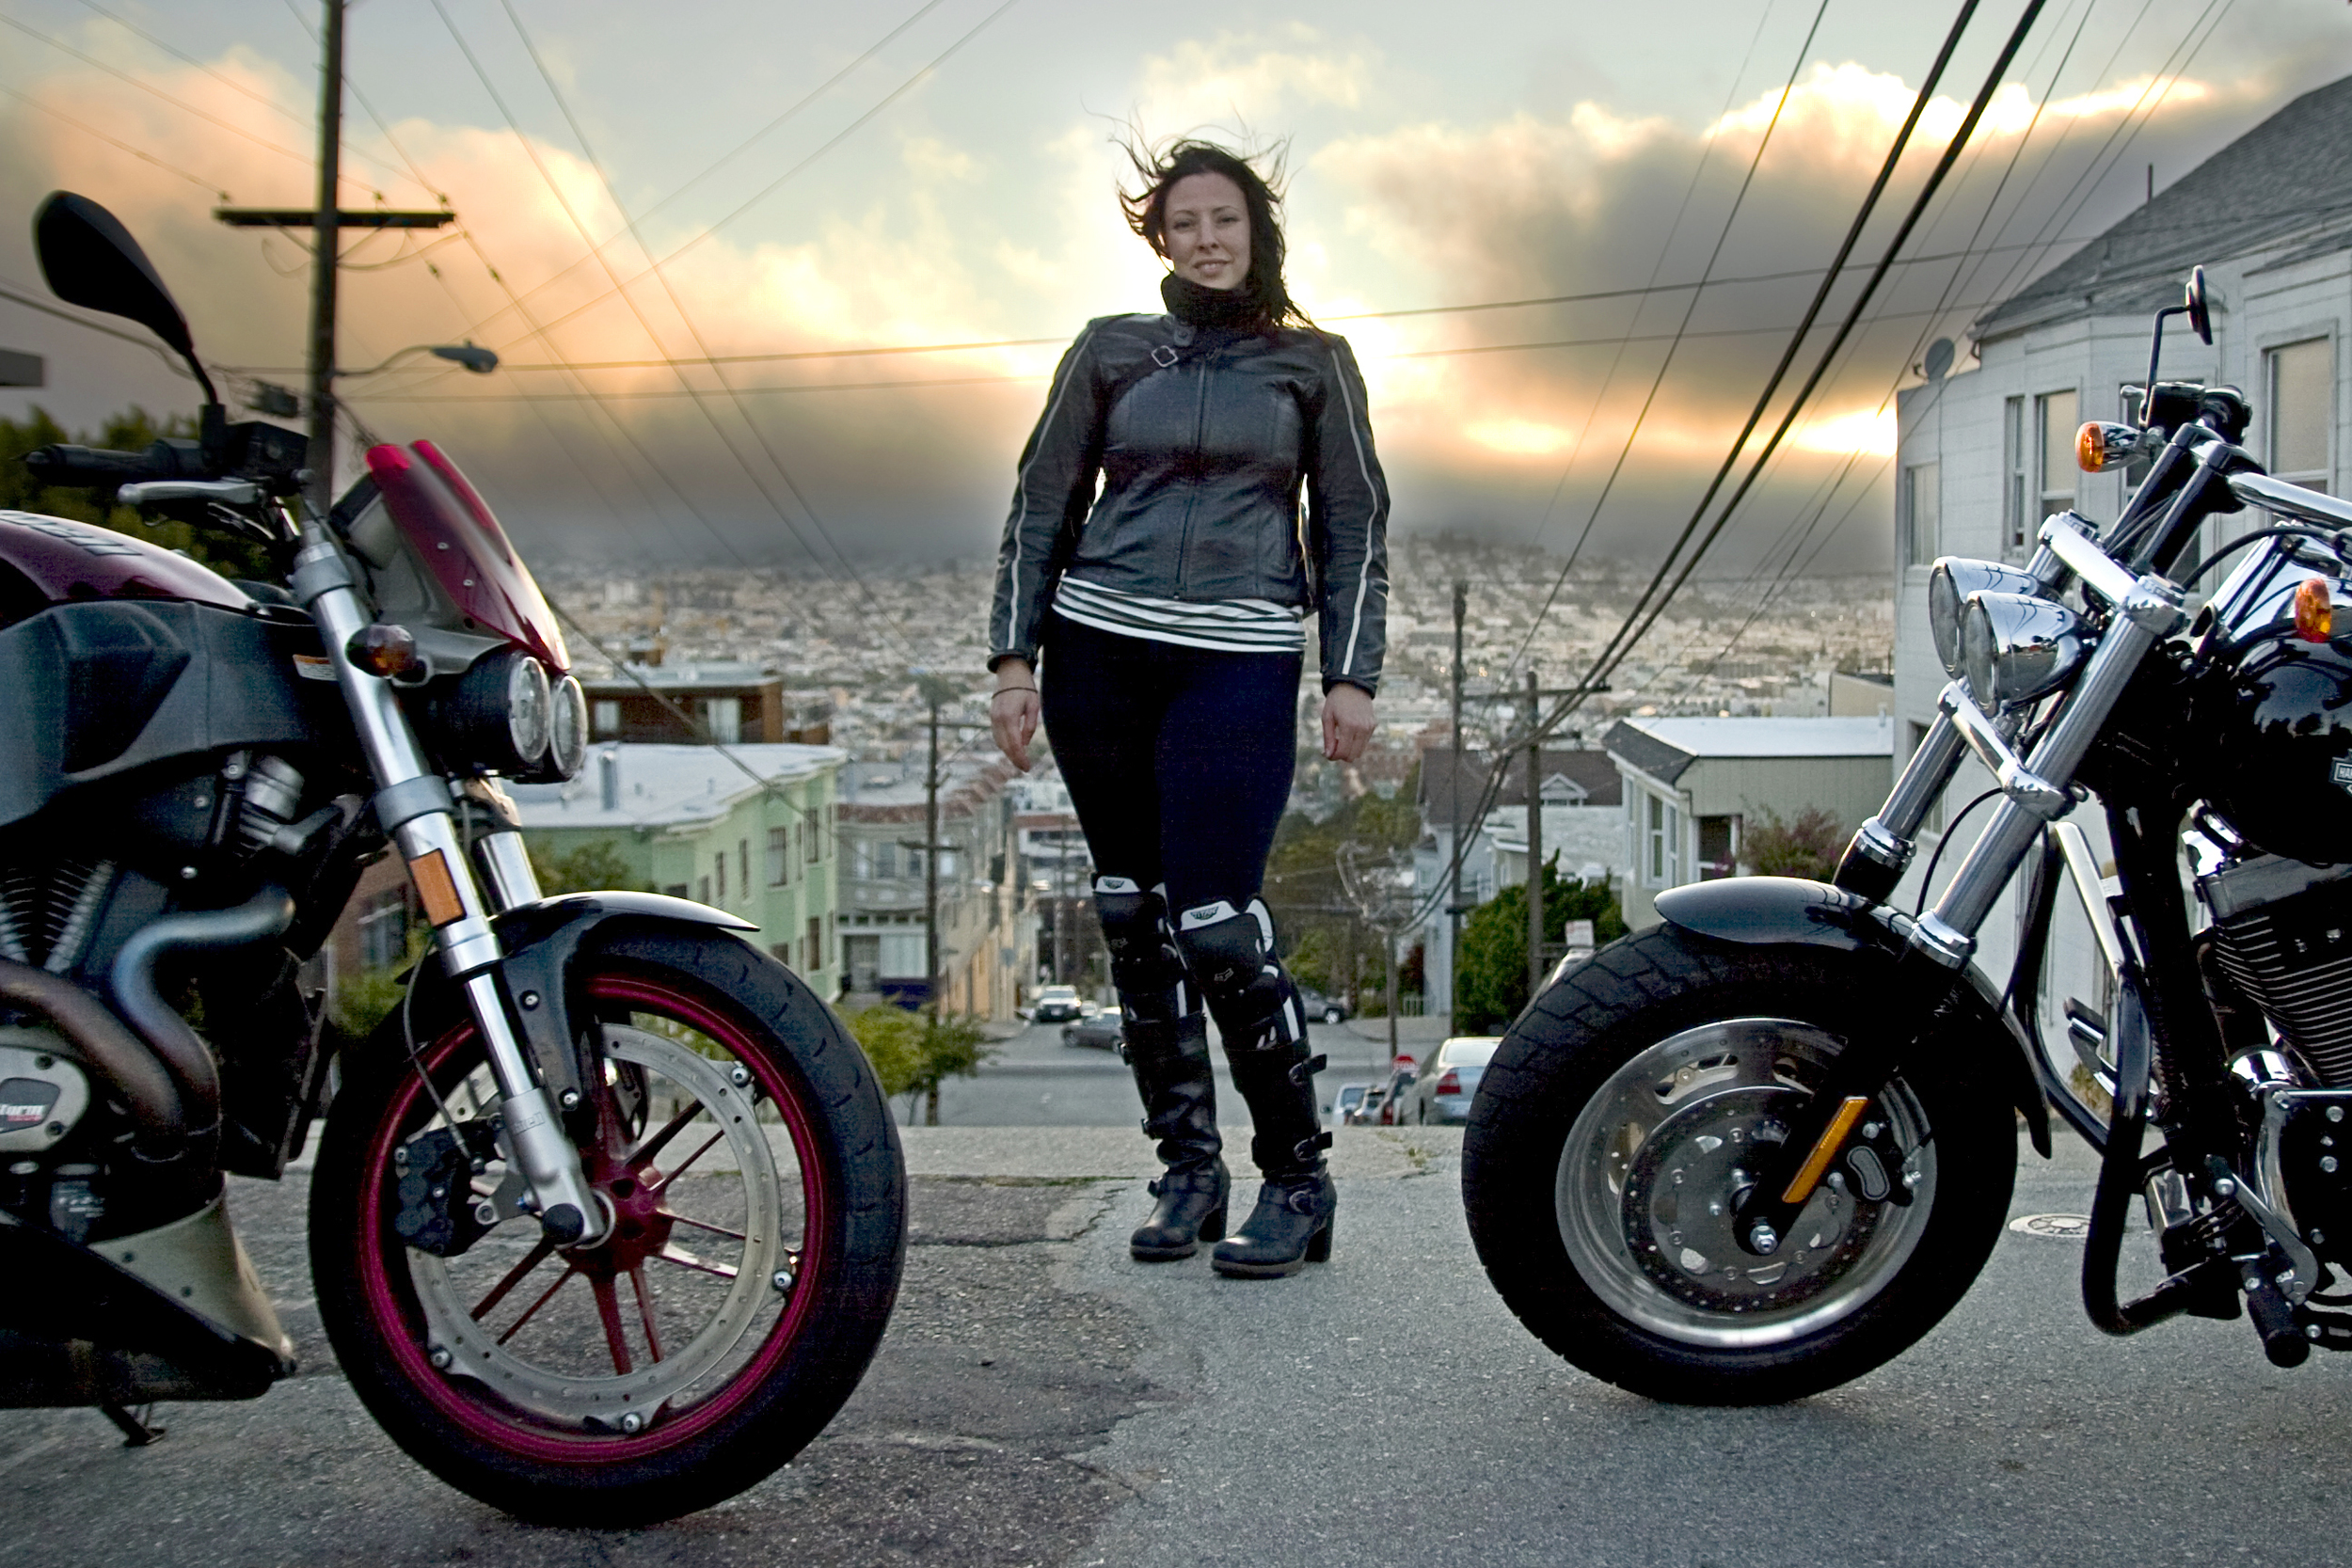 Motorcycle gloves san francisco - Dainese Sf Lady Leather Jacket San Francisco Photographer Motorcycles Motoperture